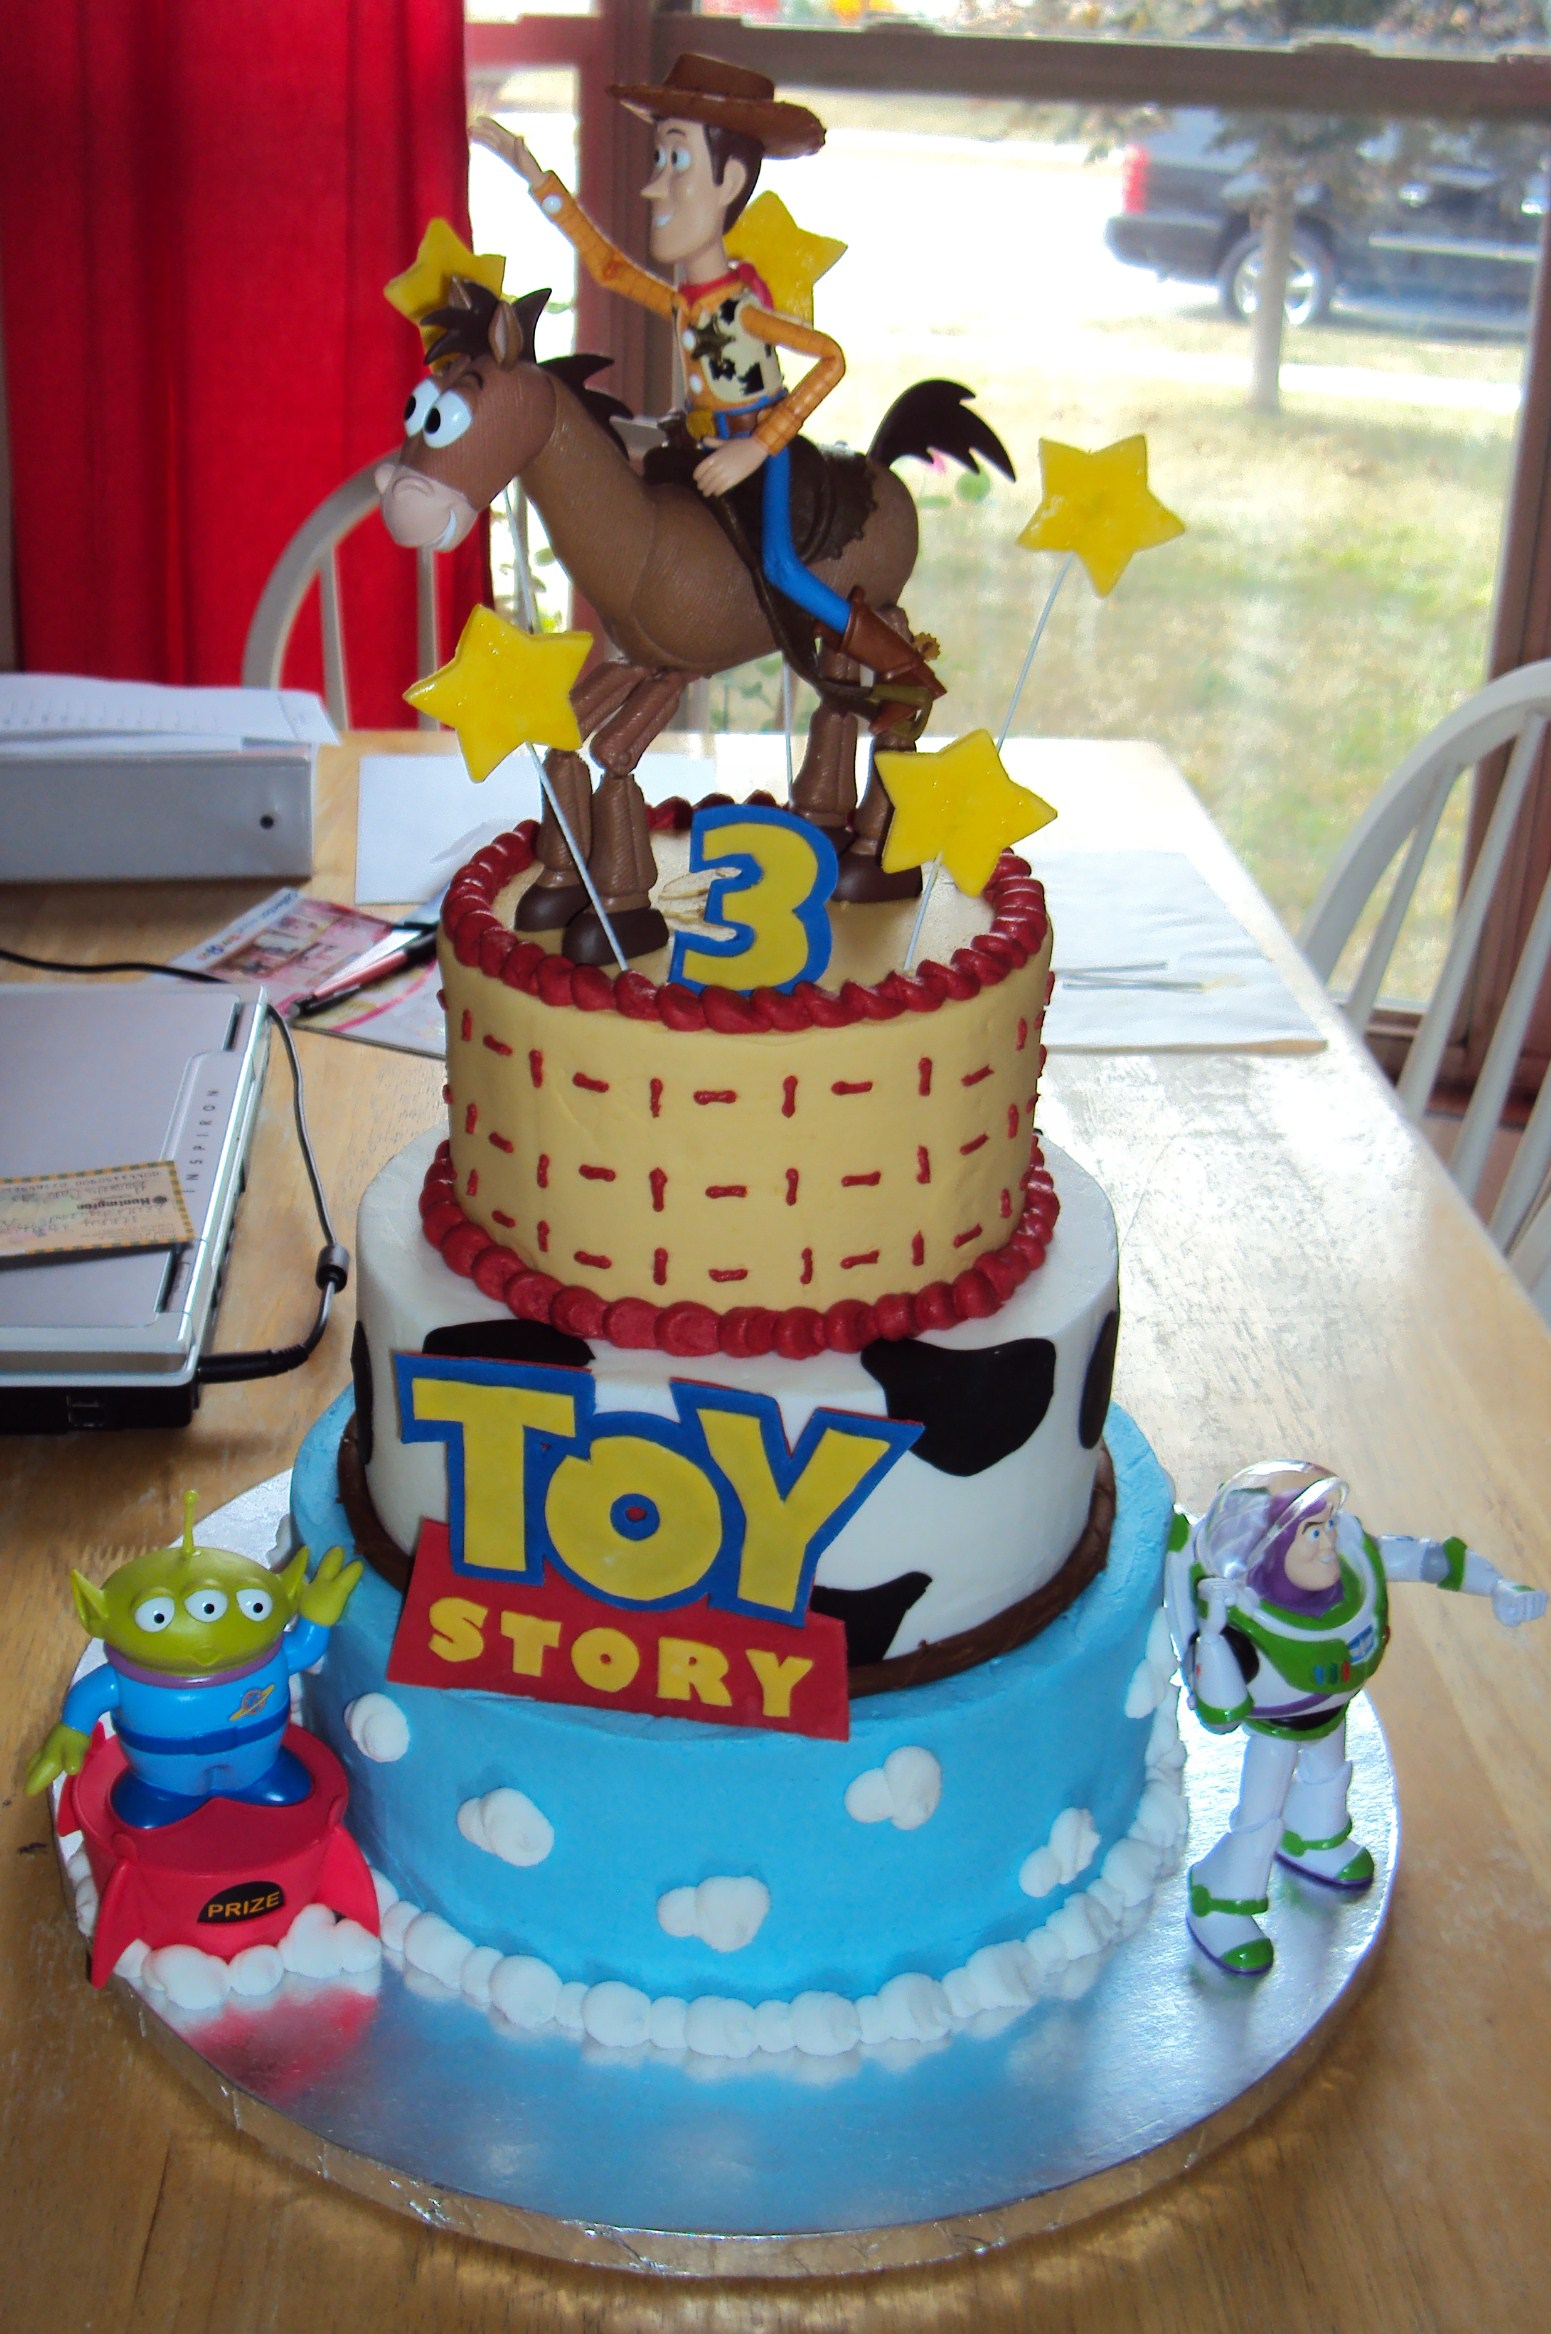 Enjoyable Toy Story Cakes Decoration Ideas Little Birthday Cakes Personalised Birthday Cards Rectzonderlifede